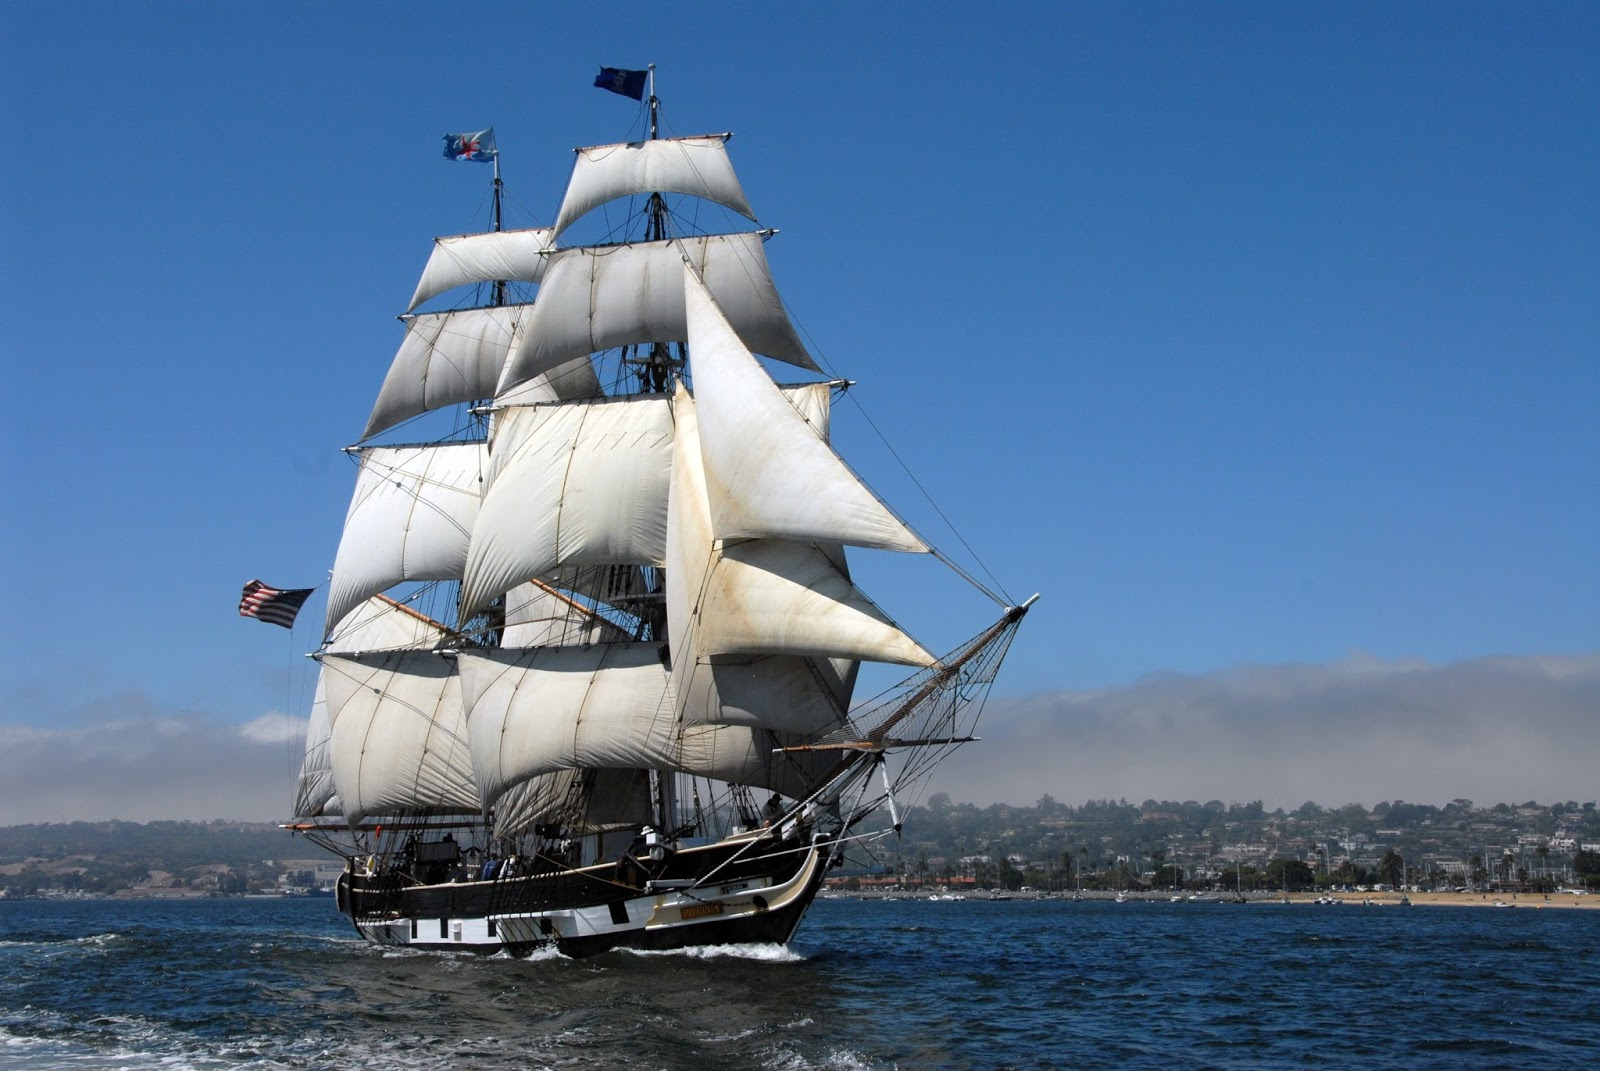 The Overleaf: Two Years Before the Mast